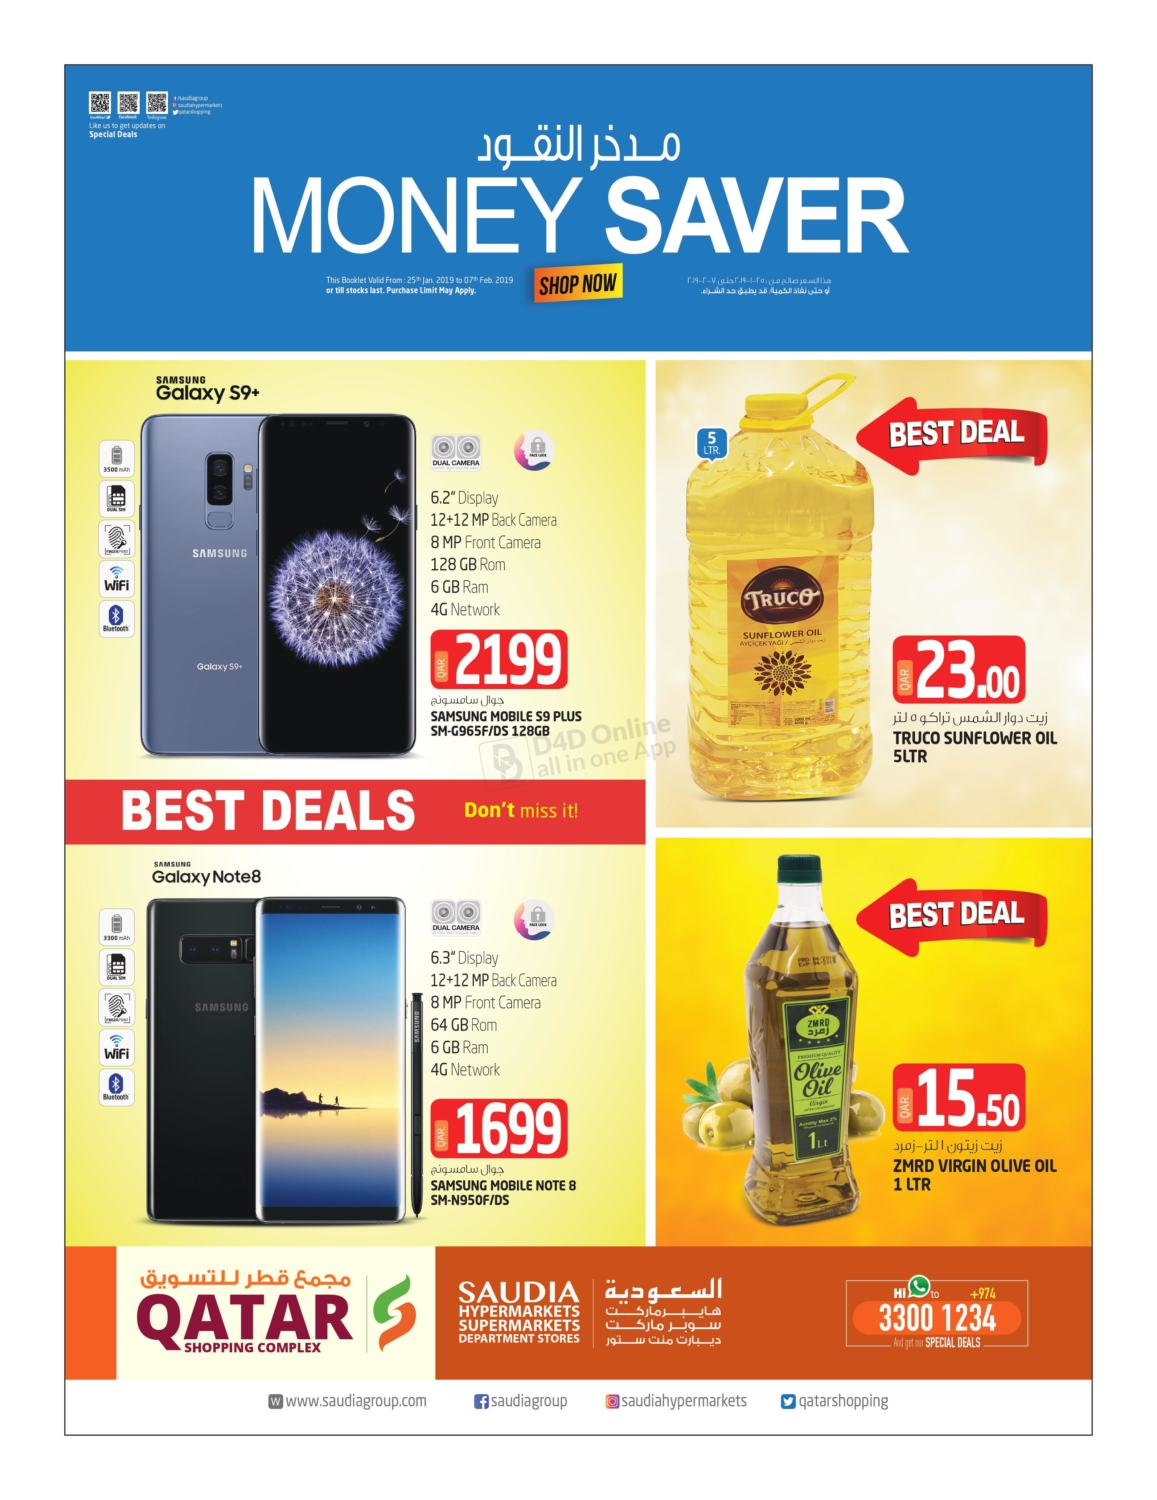 Saudia Money Saver offer till 07/02